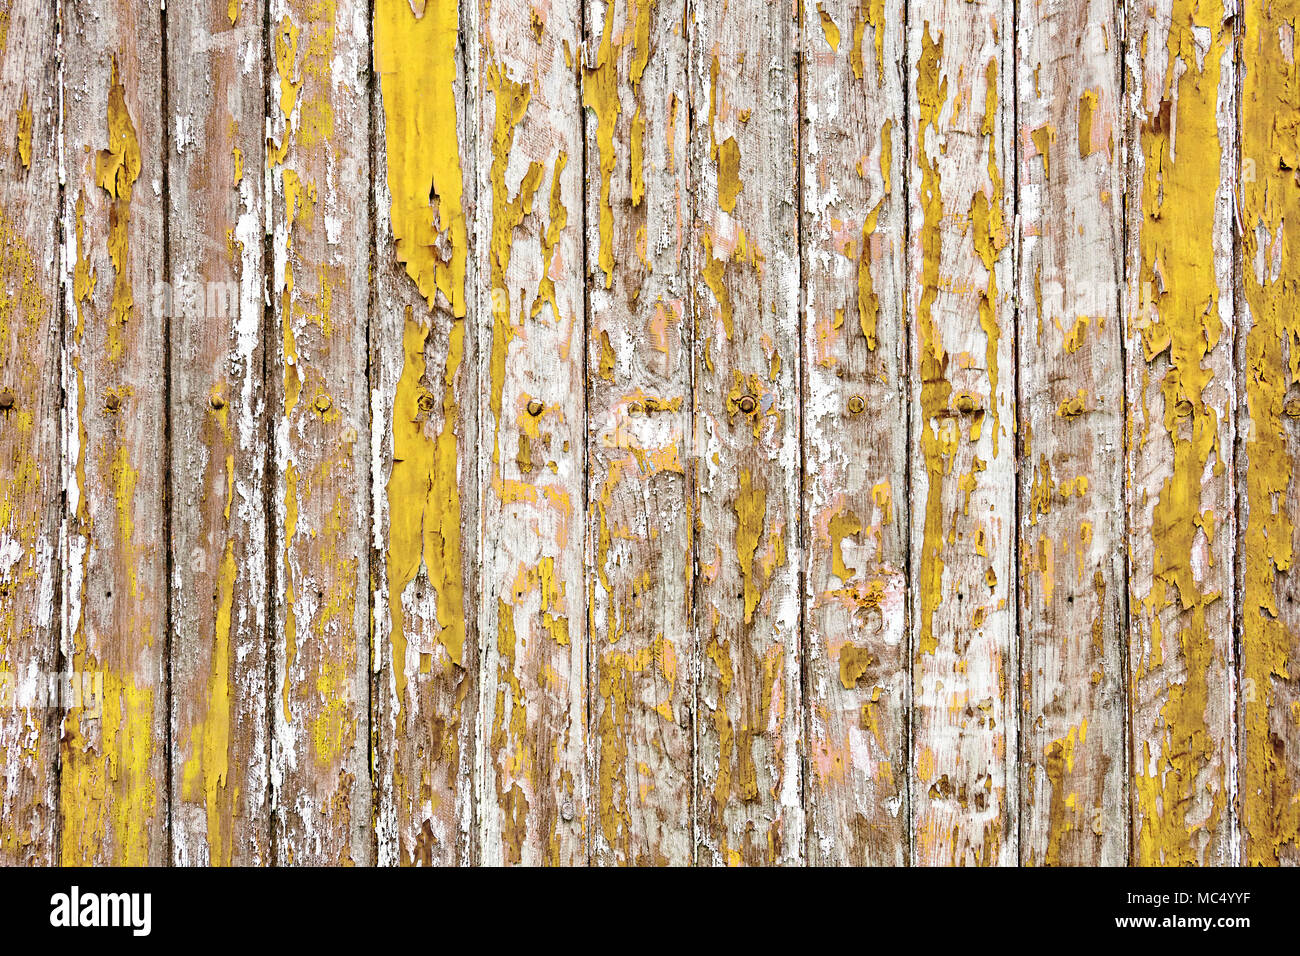 The old wooden wall painted with yellow color cracking, peeling and ...